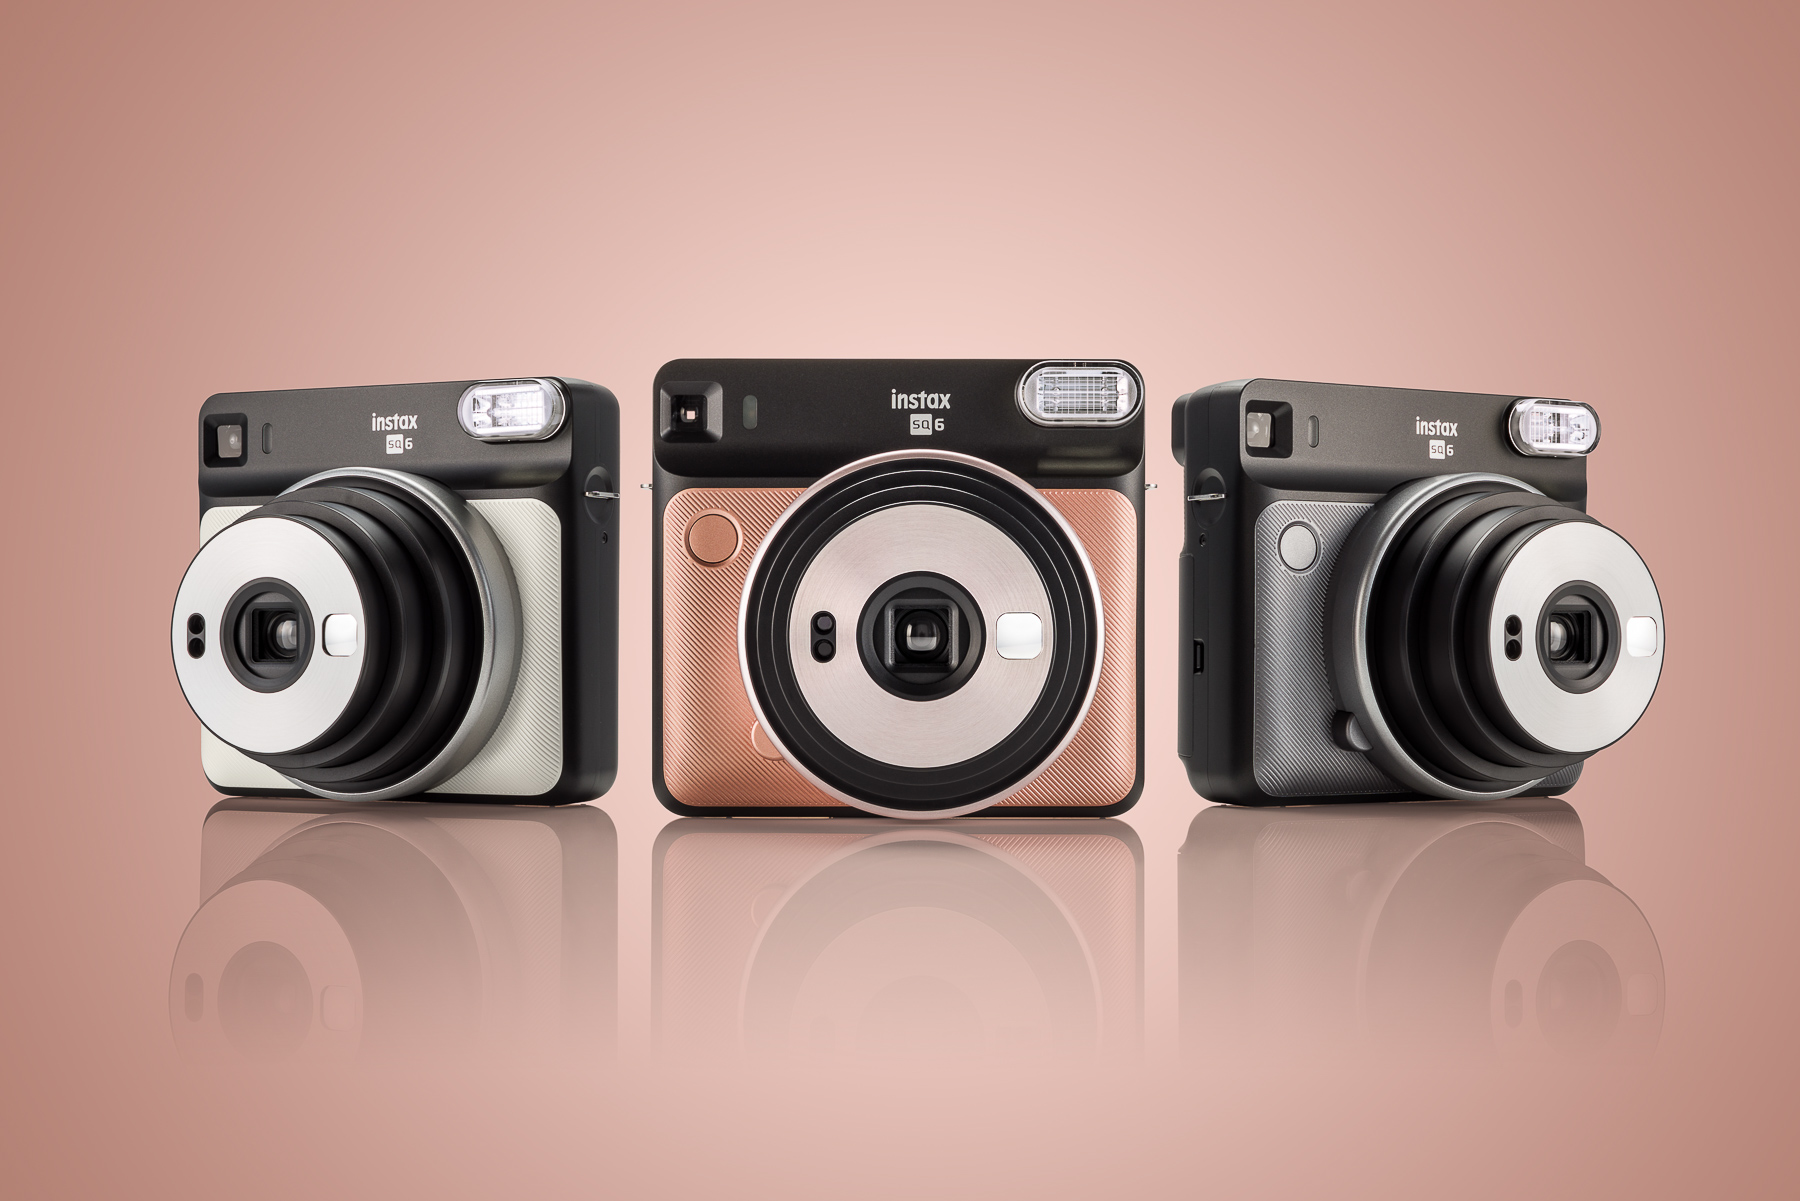 Instax Fujifilm Product Photography